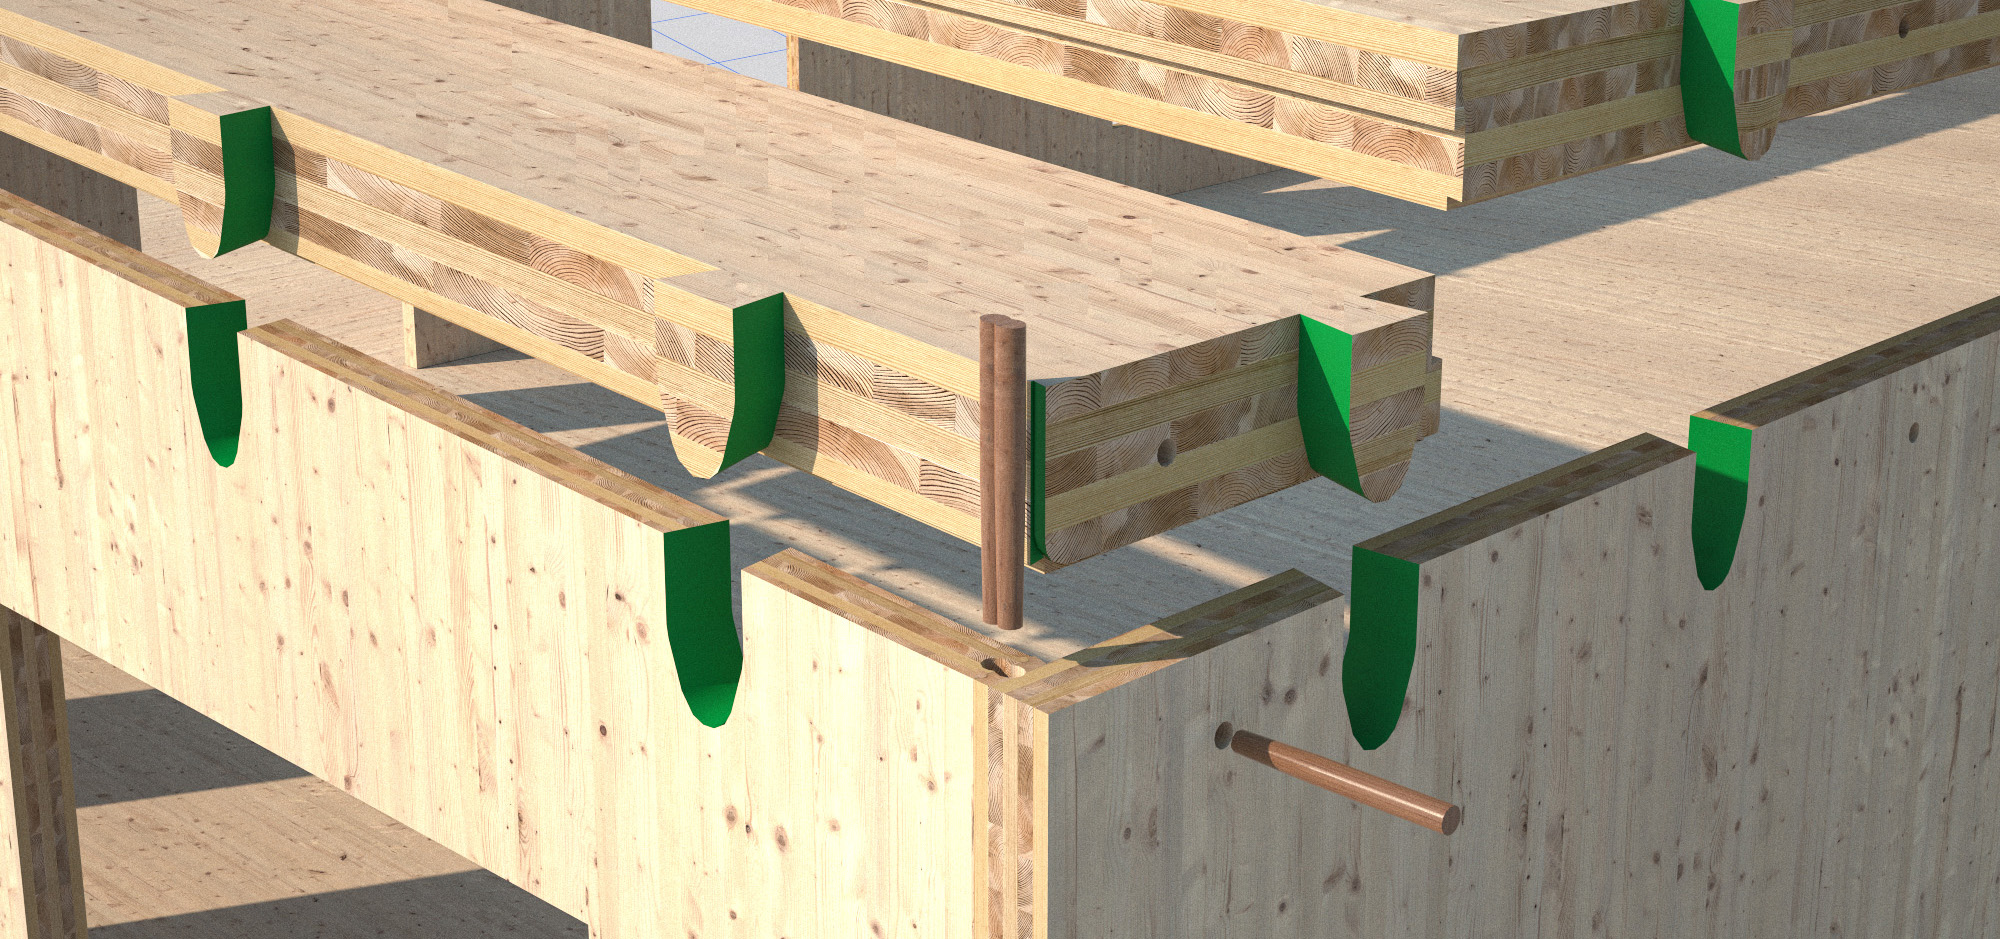 Woodbe uses old technology to build with cross-laminated timber